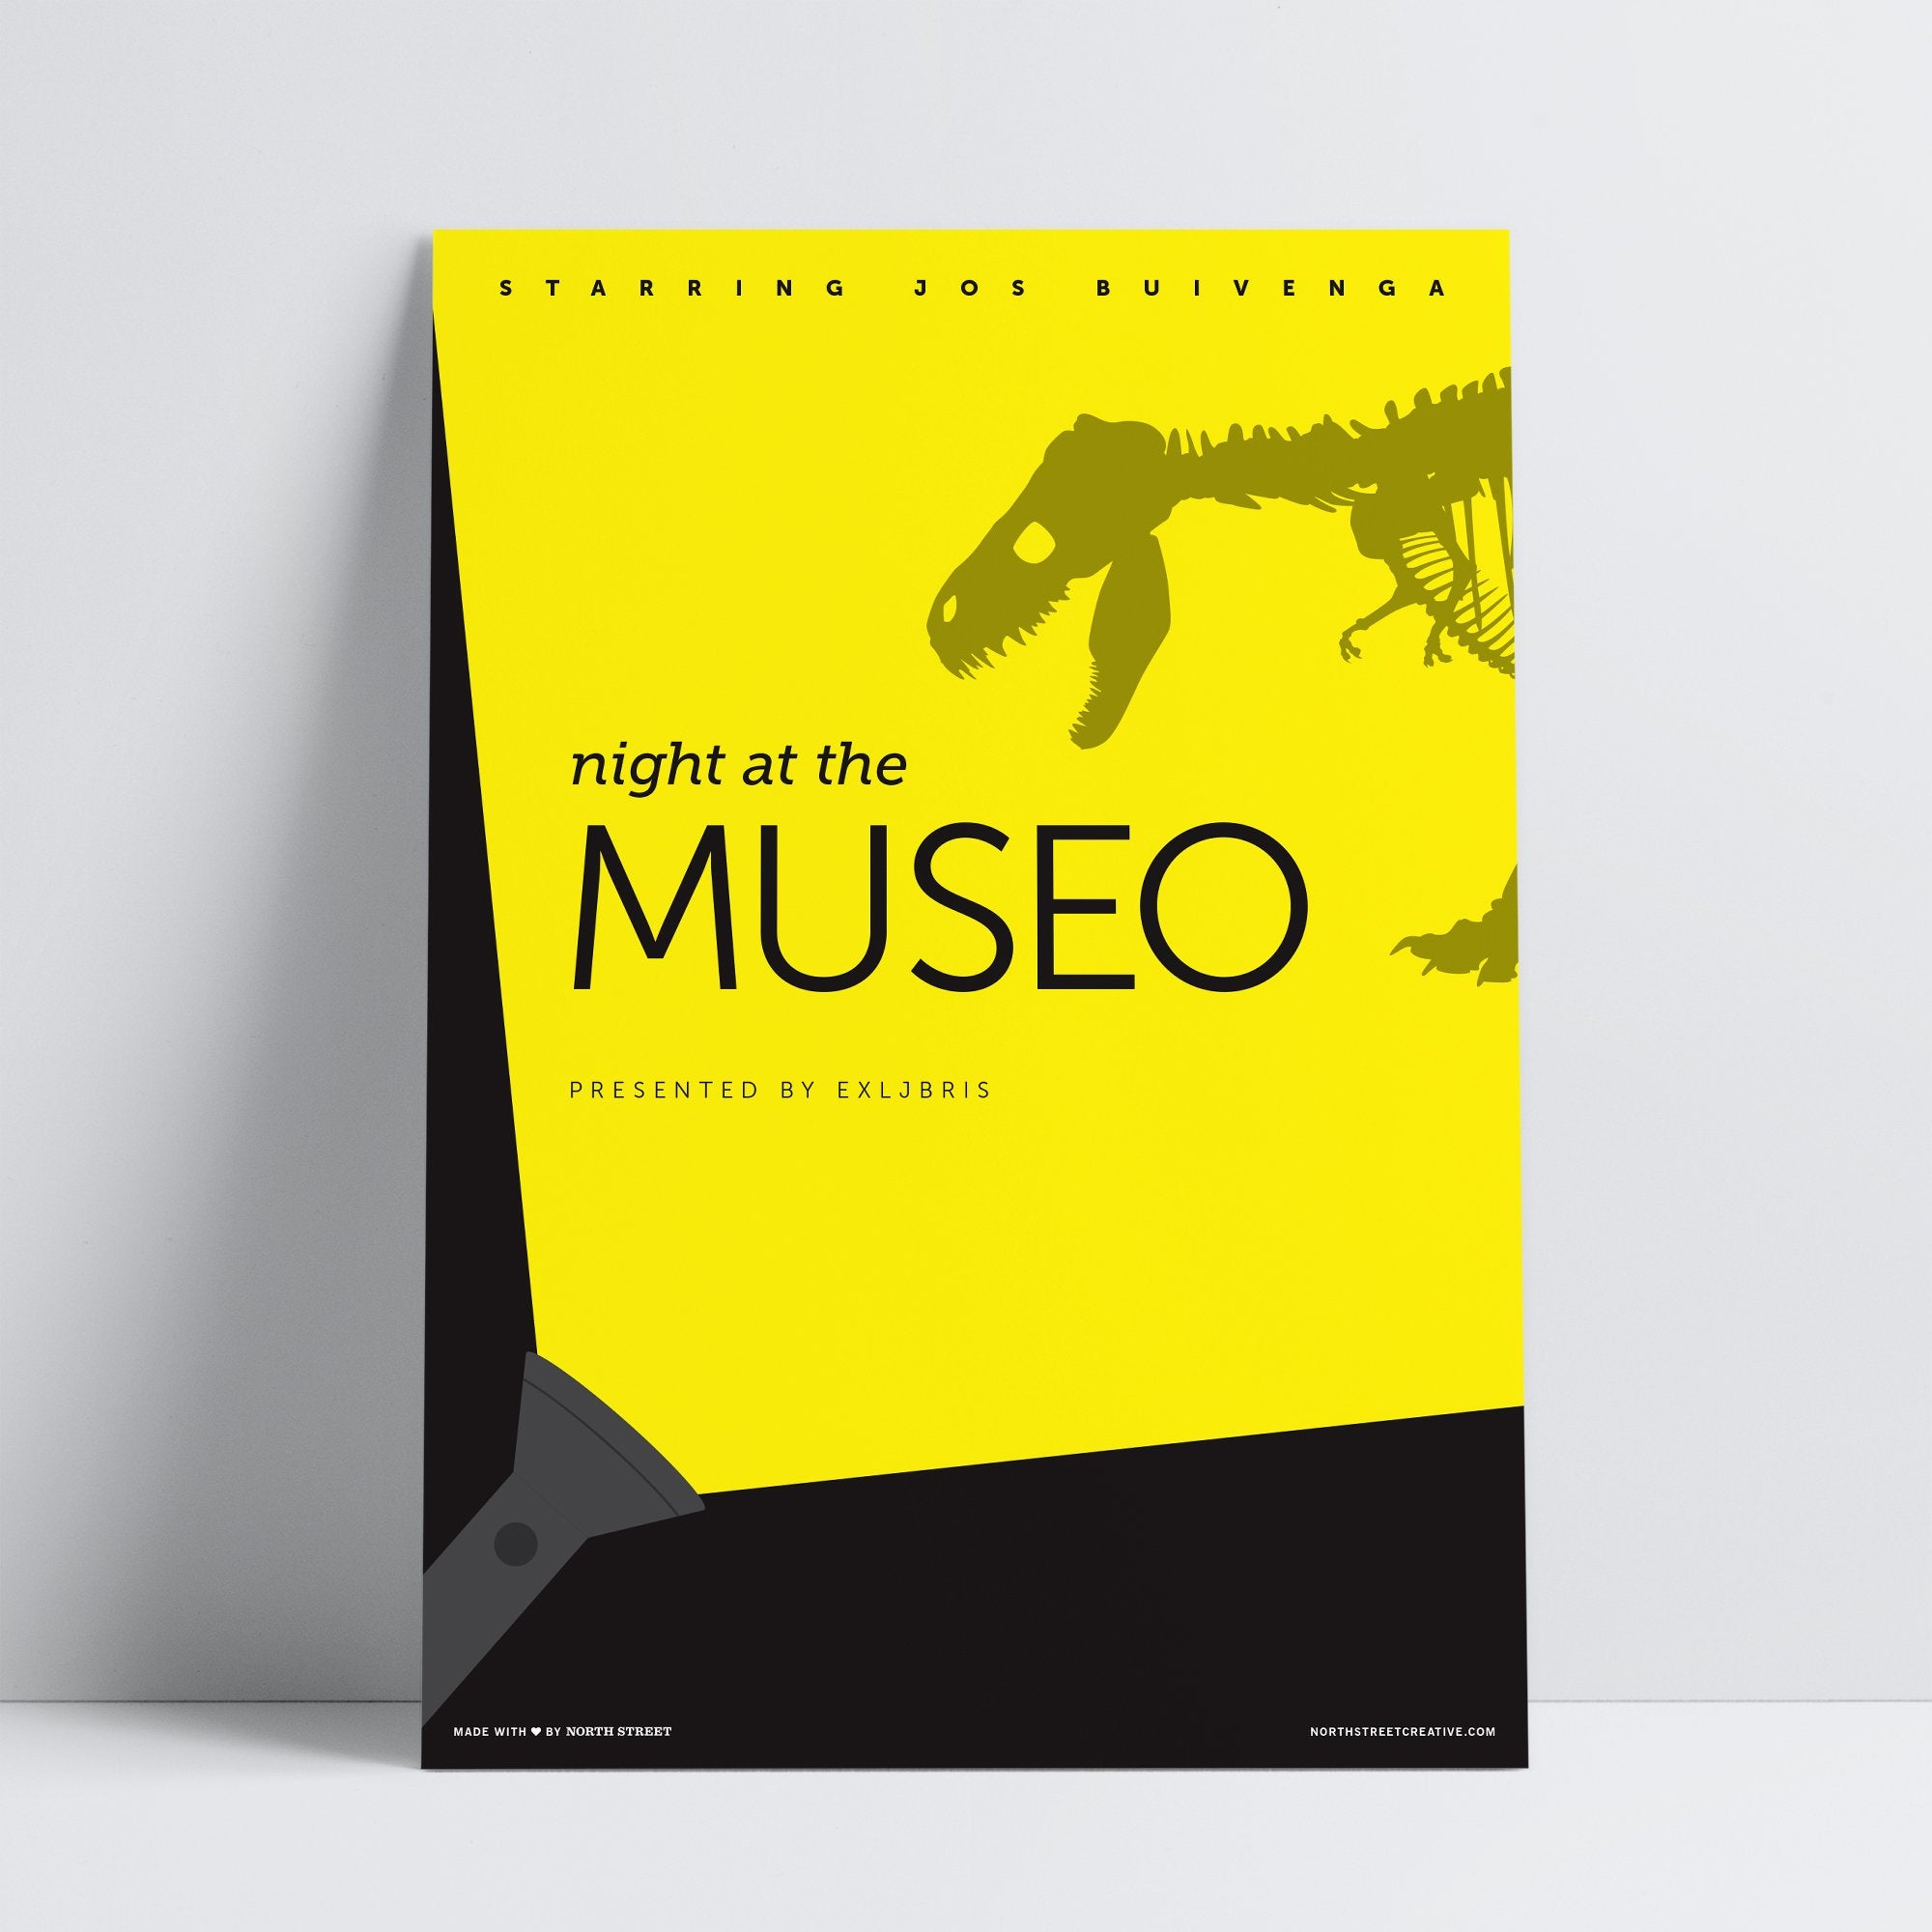 Night at the Museo